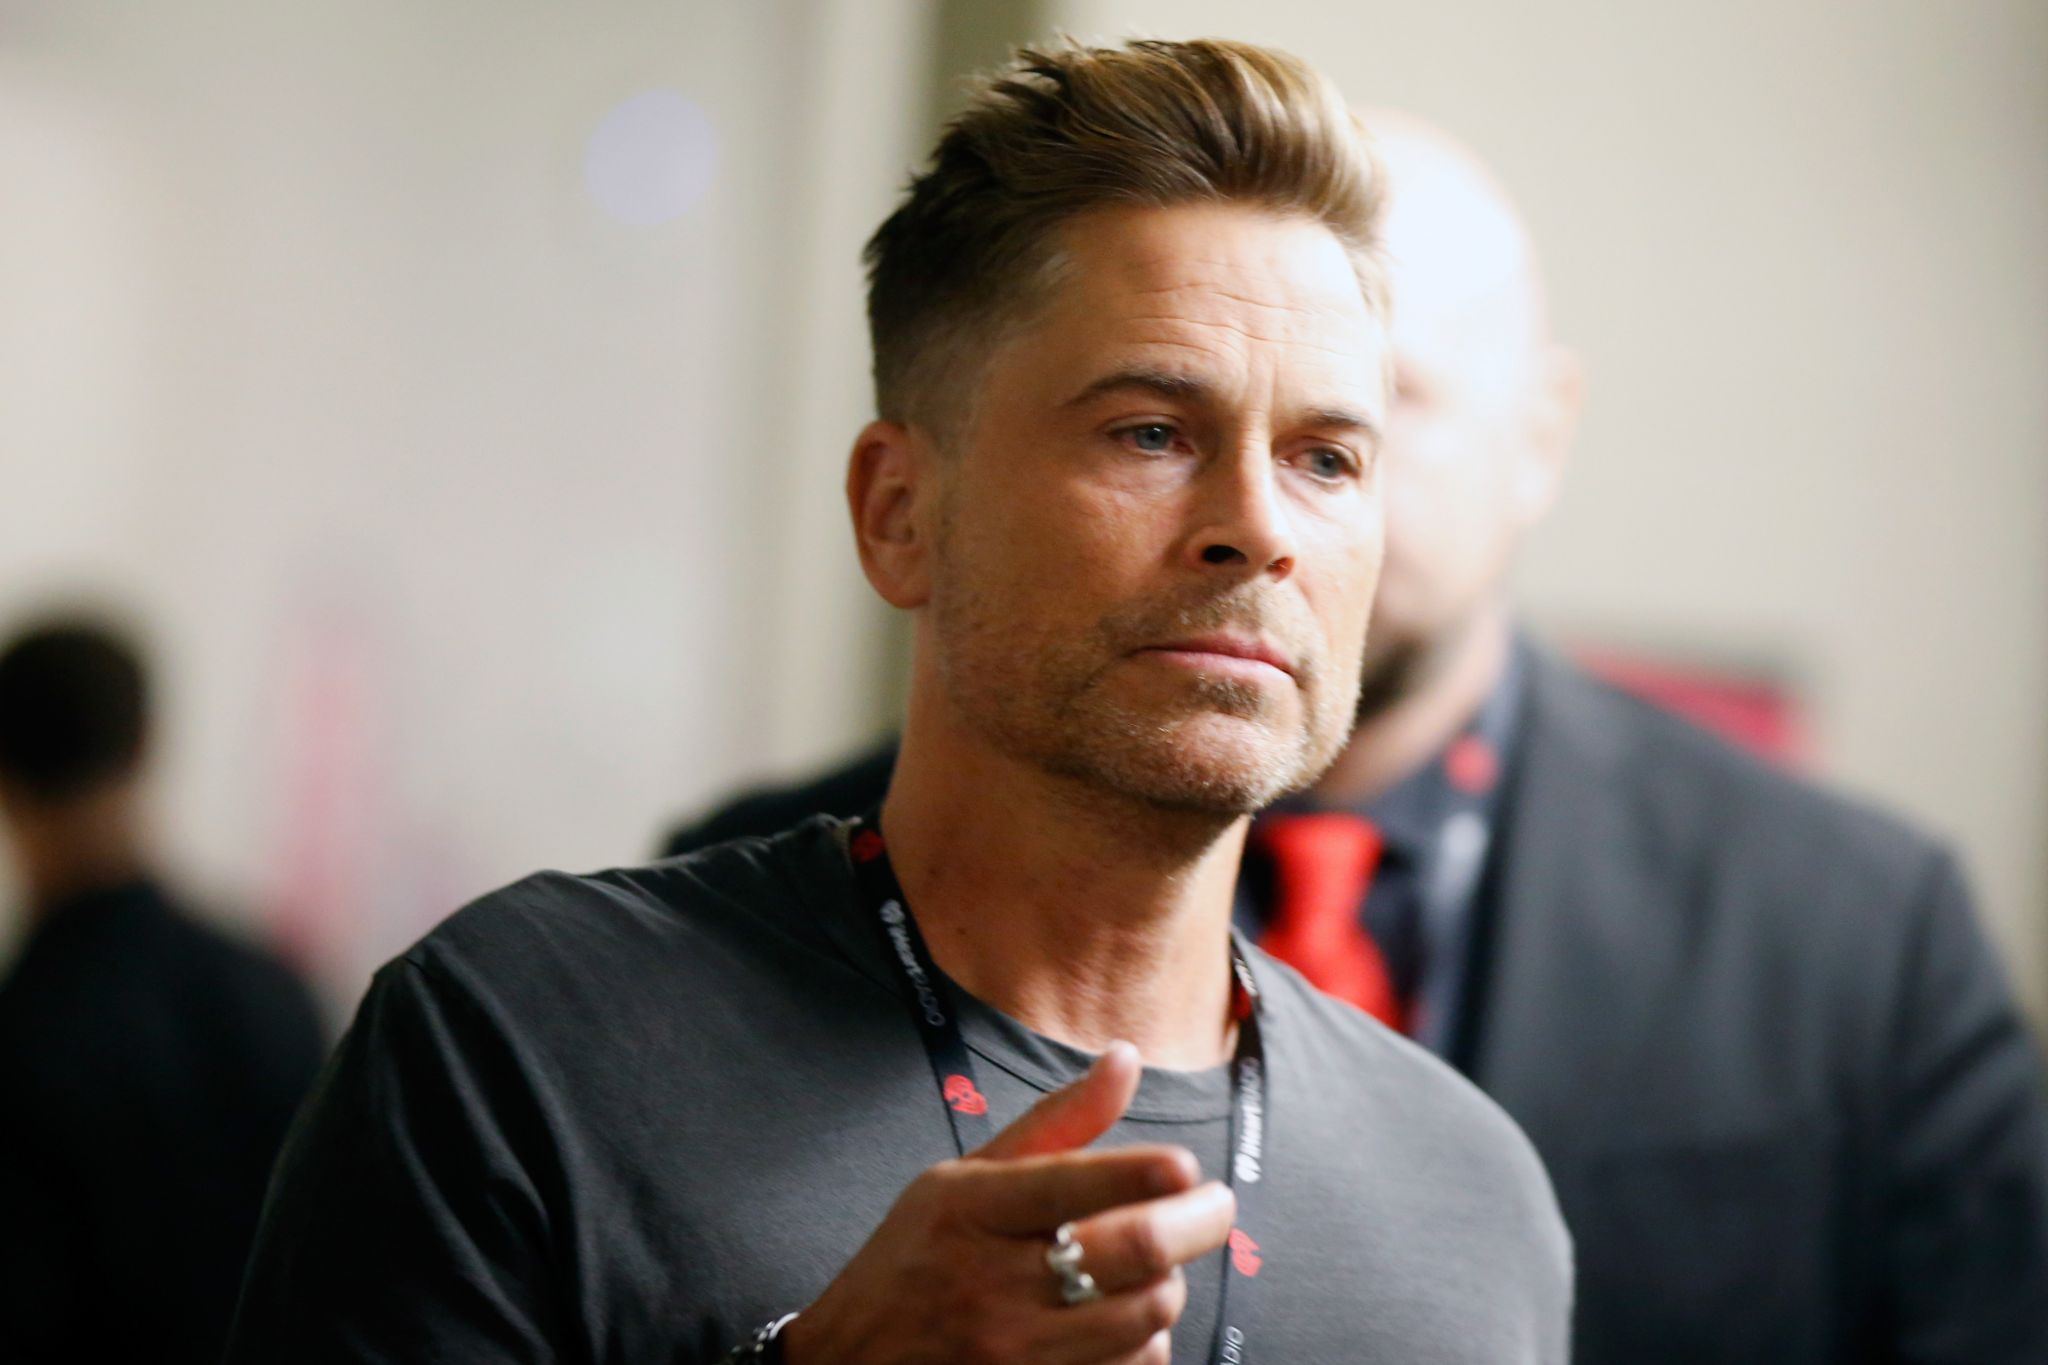 rob lowe schedules a houston appearance to tell stories